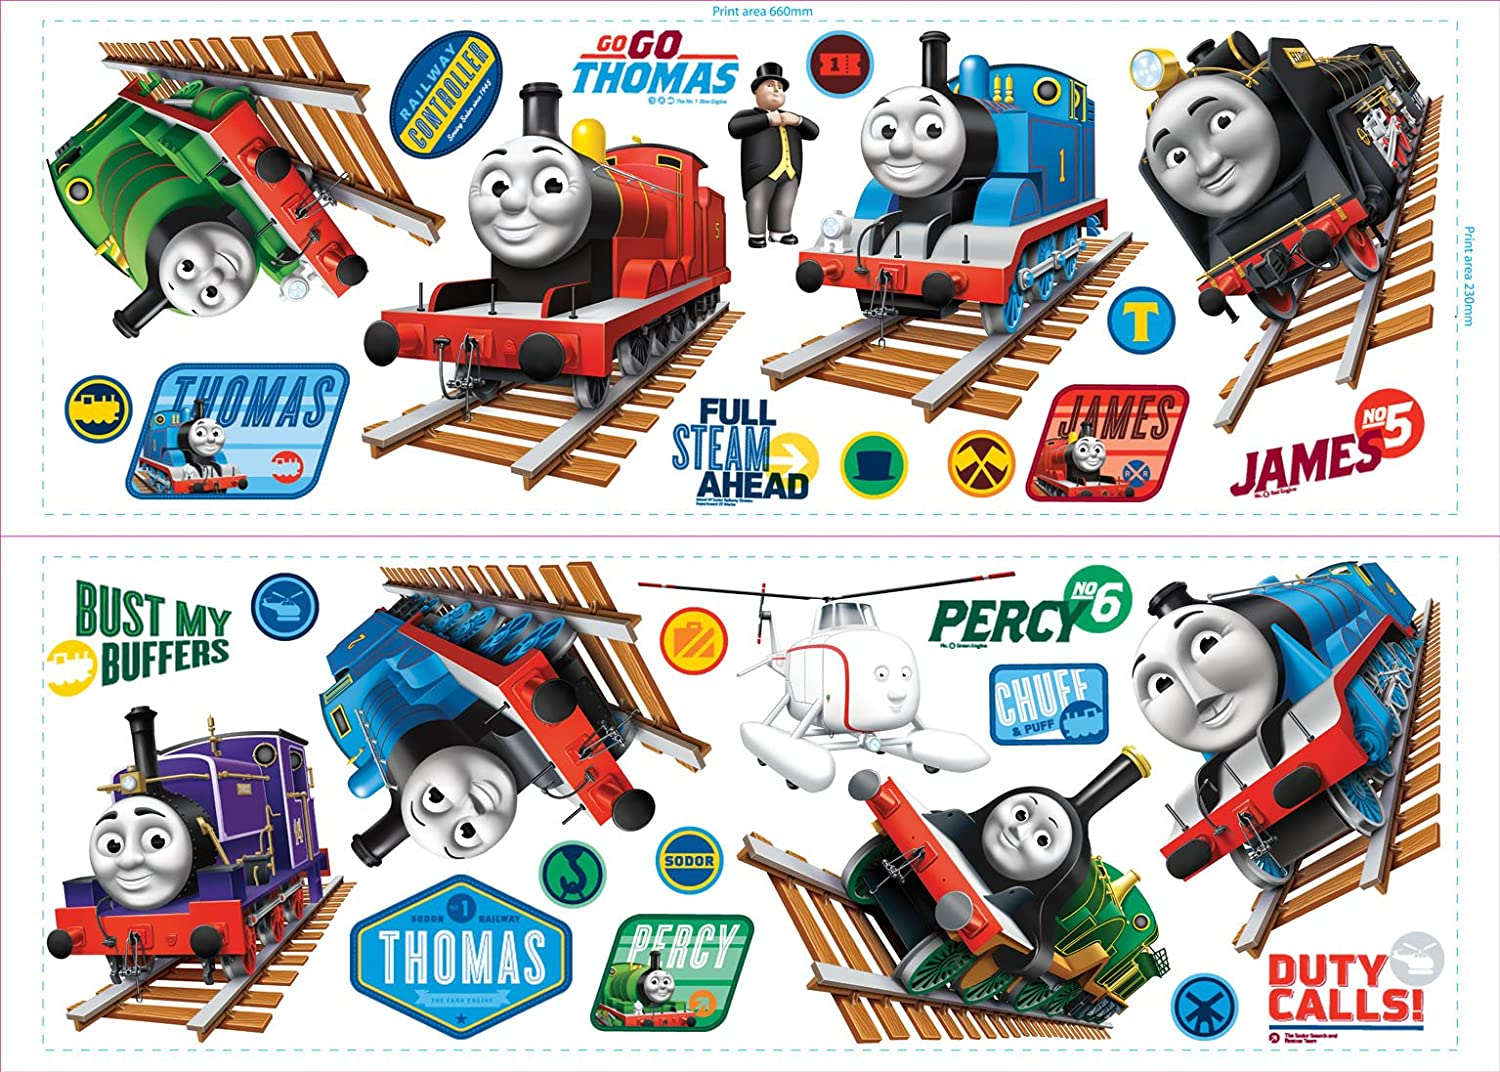 Captivating Fun4Walls CGI Thomas And Friends Stikarounds Repositionable Wall Stickers:  Amazon.co.uk: Kitchen U0026 Home Part 11